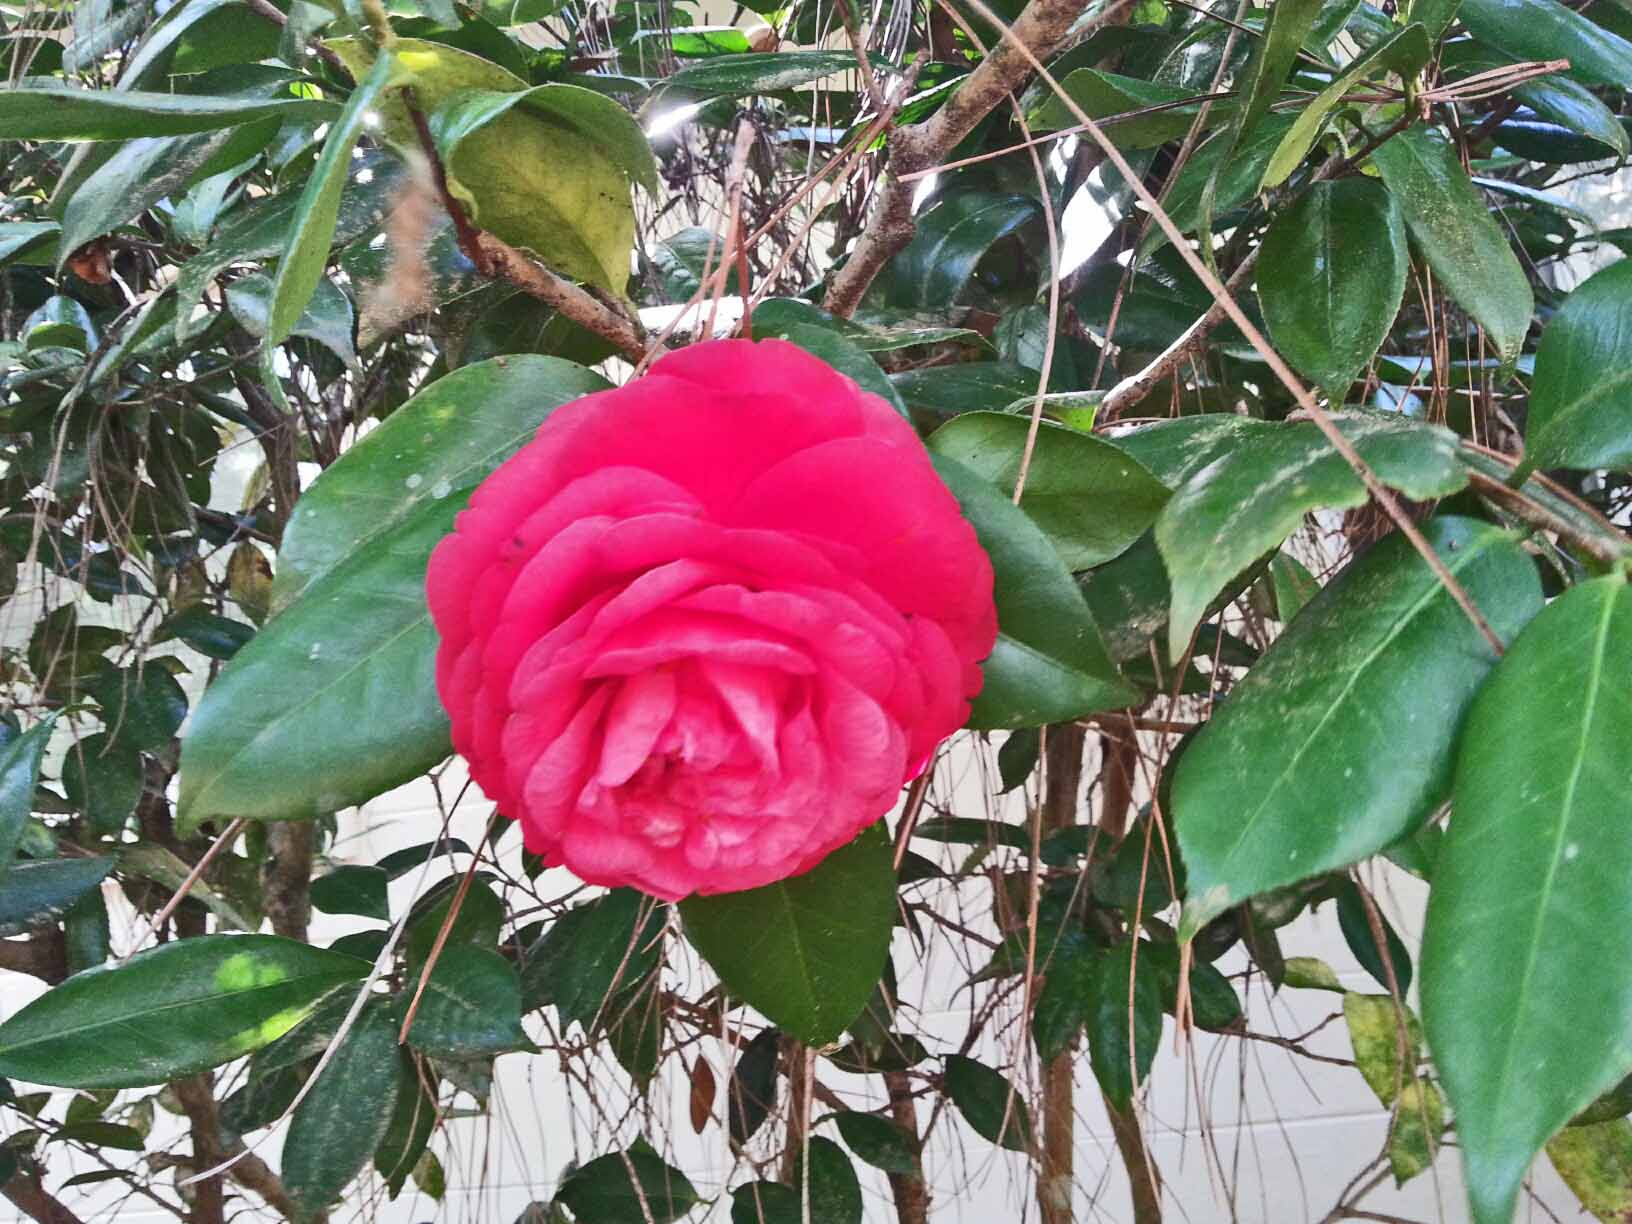 The very last camellia ... they've been blooming for months and have been such a joy to witness